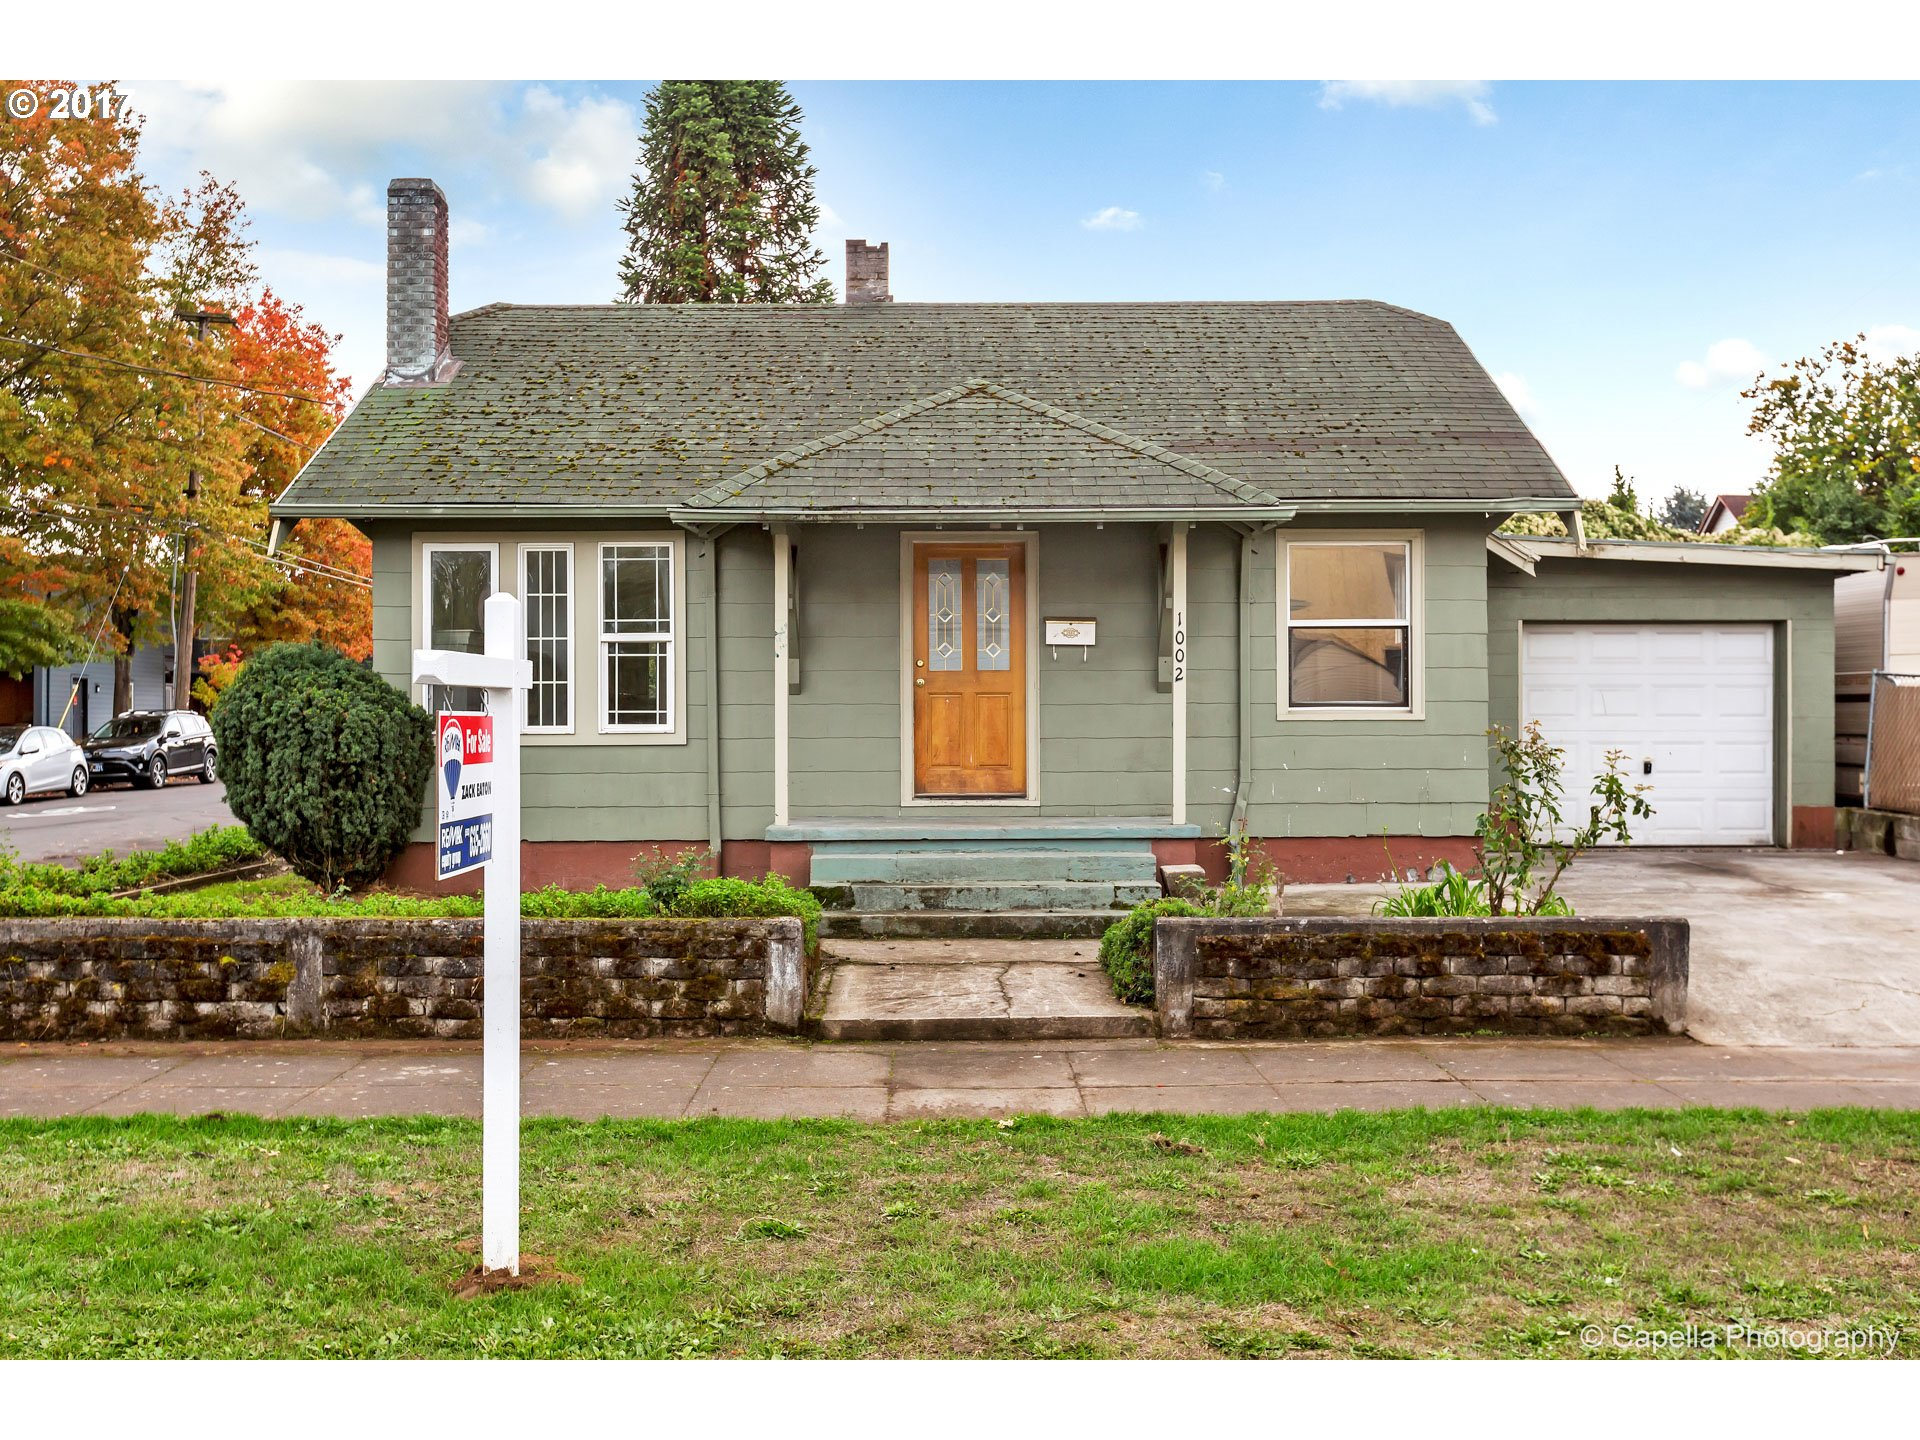 Great investor opportunity! This classic Portland bungalow features 4 bedrooms and 1 bathroom, 1 car garage. Close to shops, restaurants, and Peninsula Park. Excellent fixer opportunity.